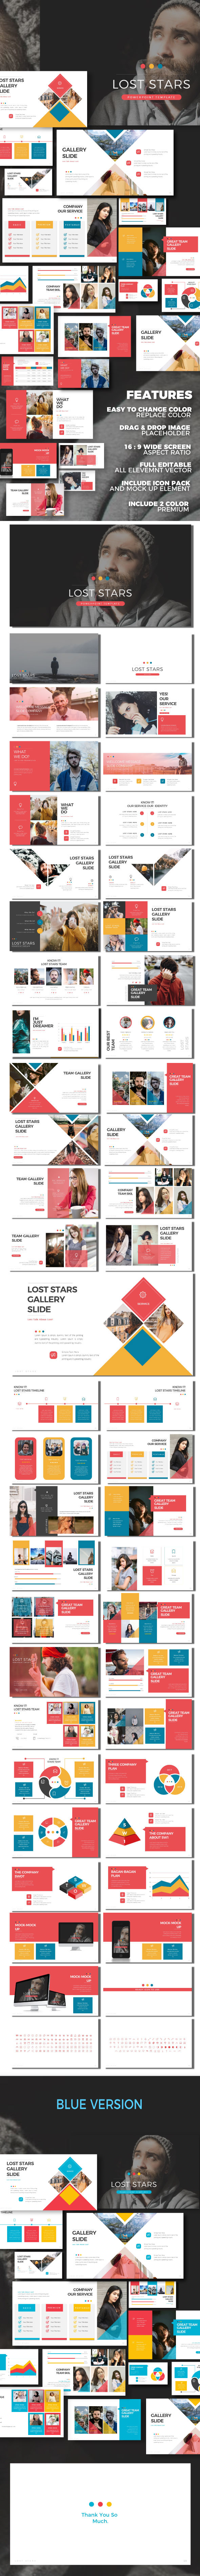 Lost Stars - Presentation Templates - Business PowerPoint Templates